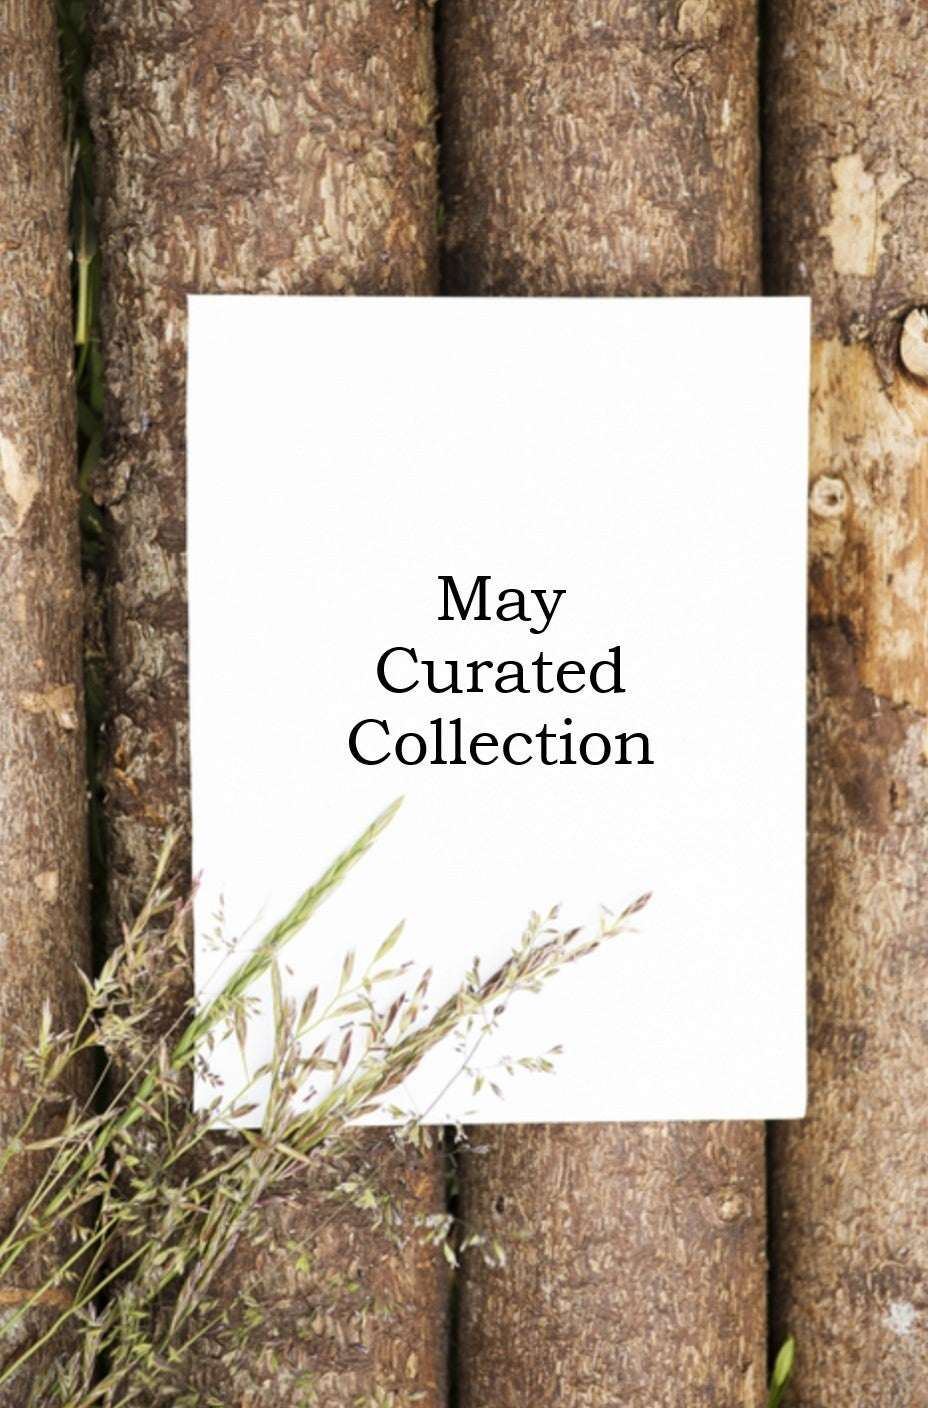 May Curated Collection